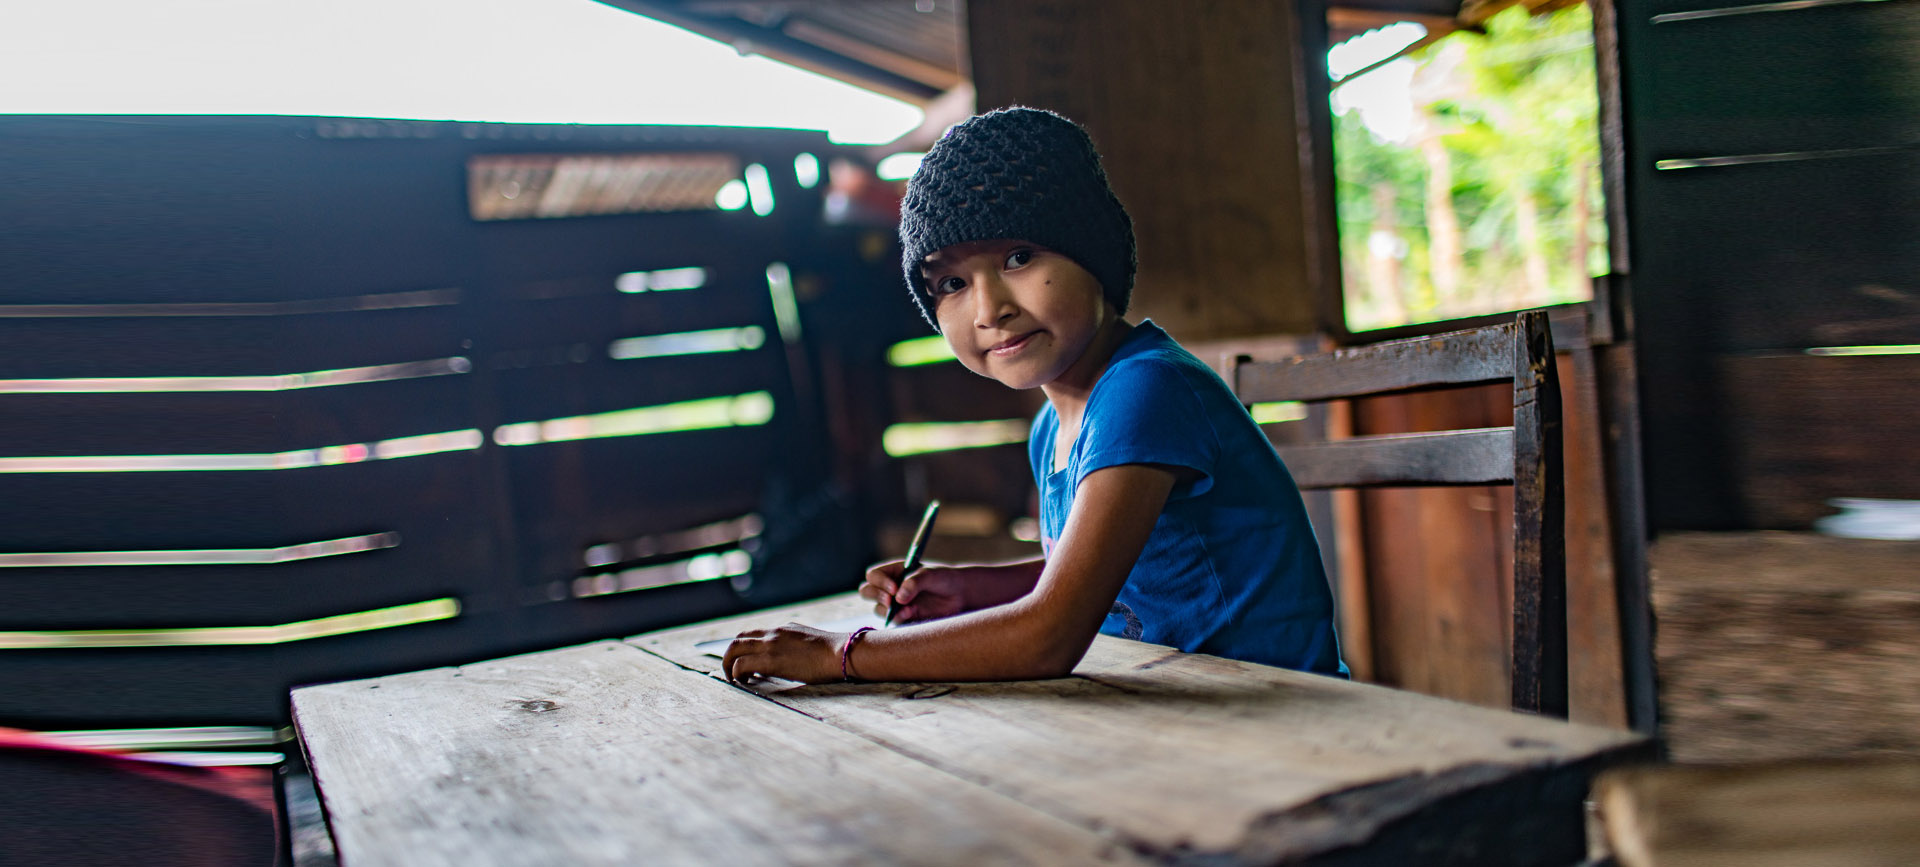 Young child smiling while sitting at a wooden desk